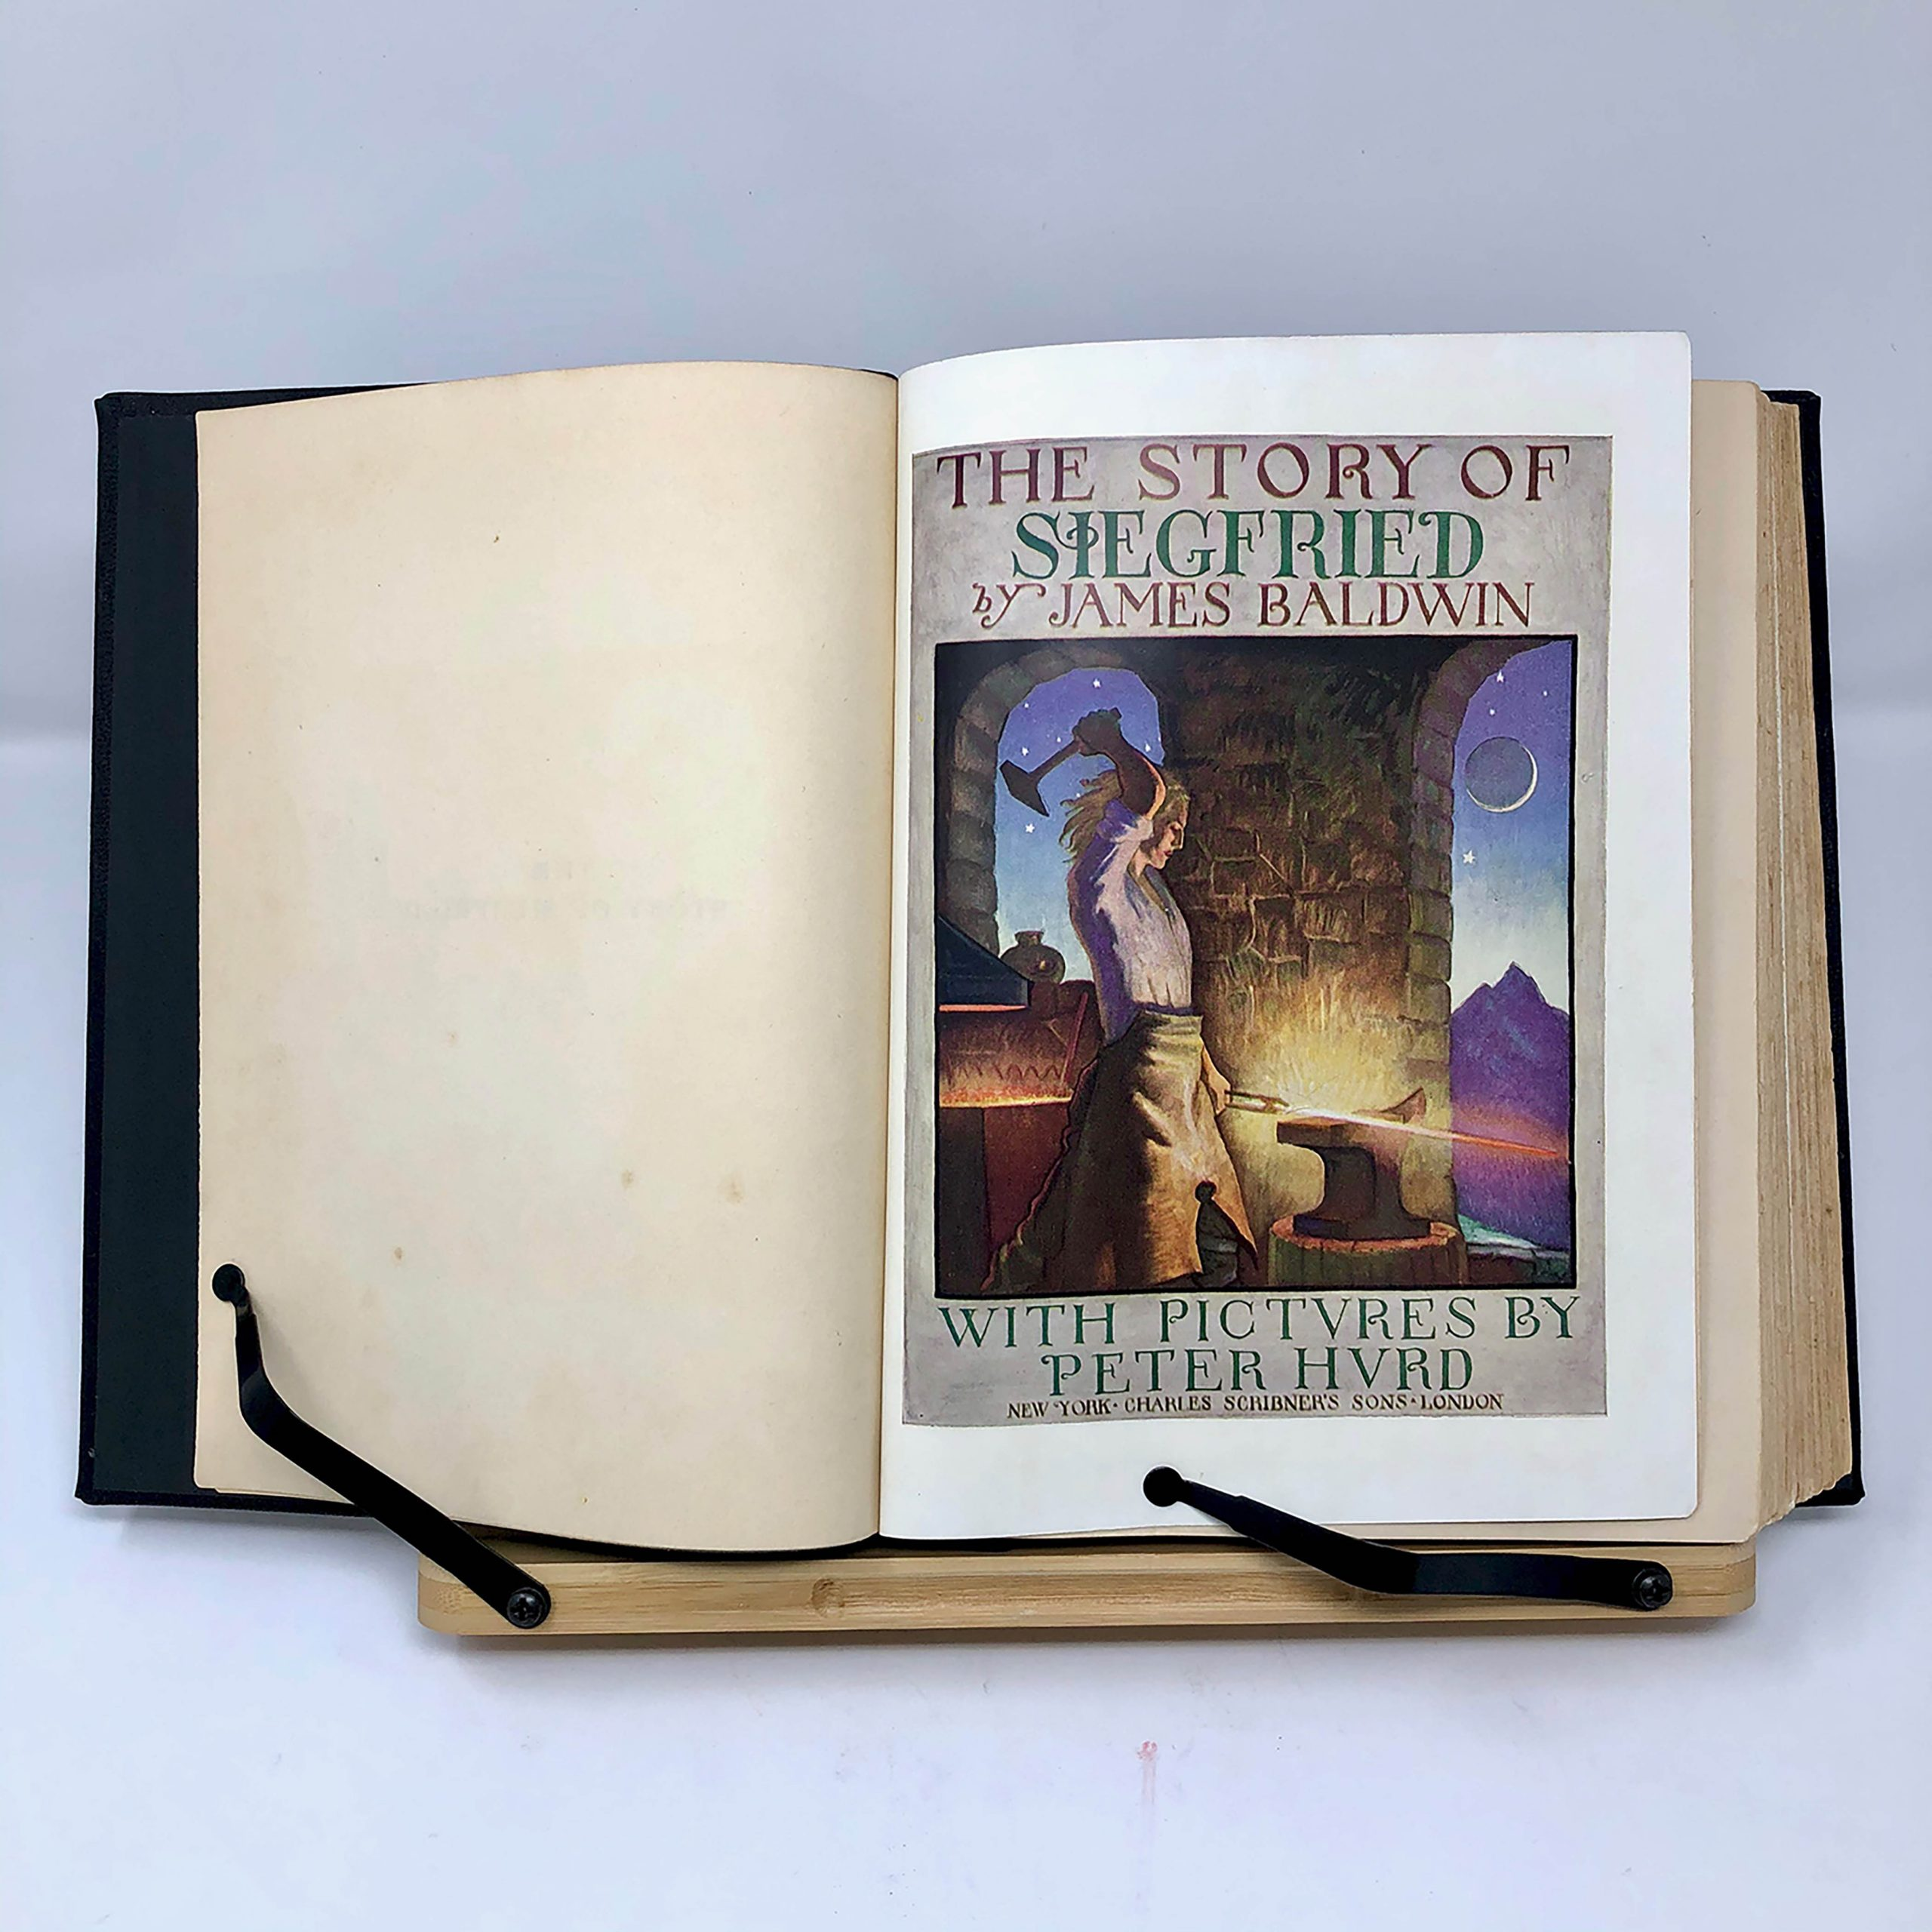 The Story of Siegfried By James Baldwin 1932 Edition